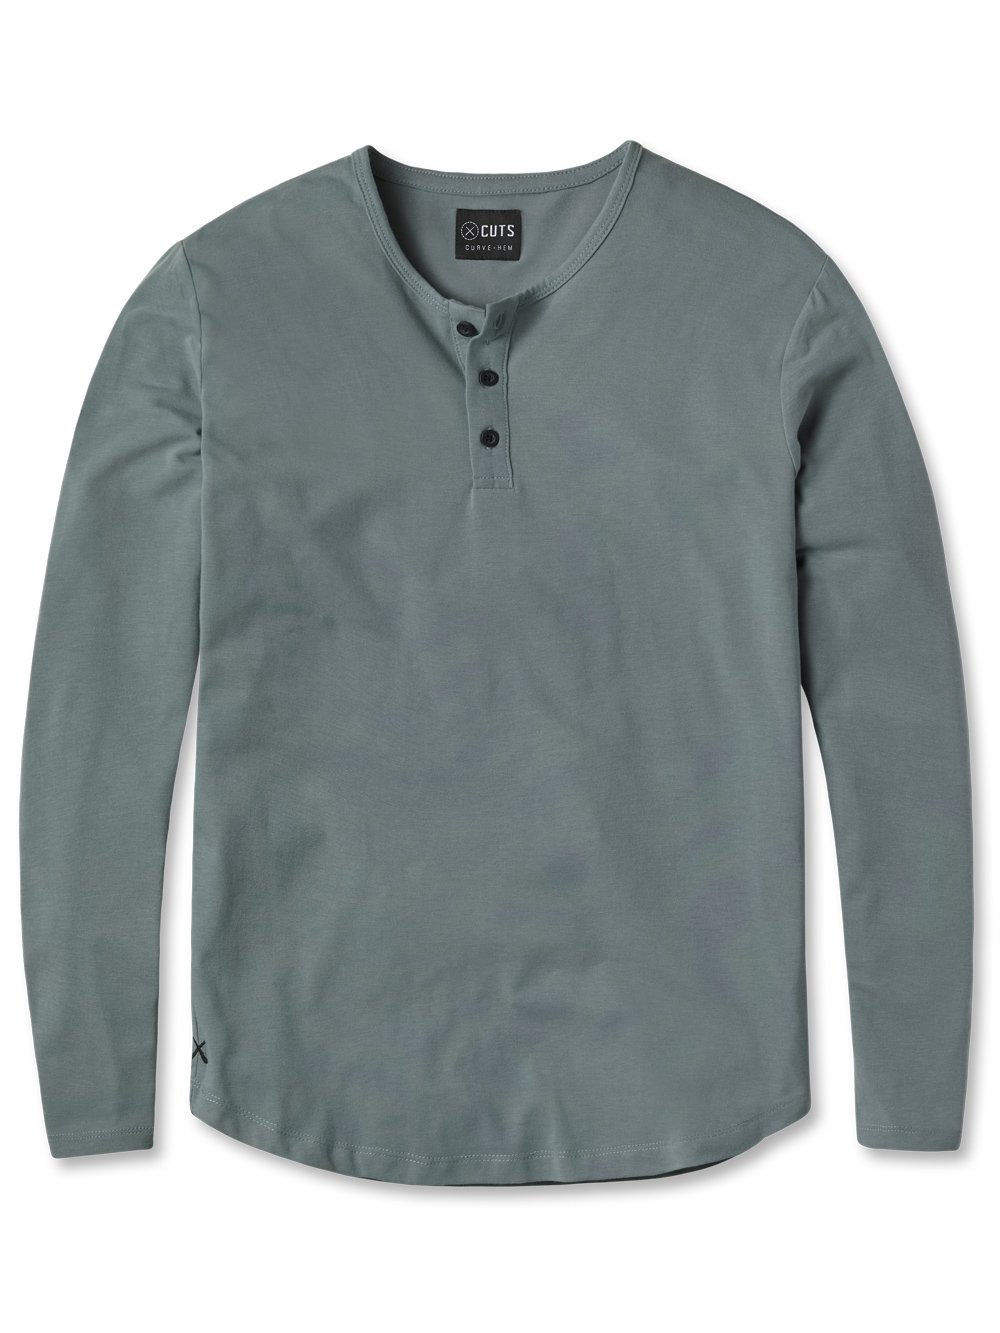 cuts clothing long-sleeve henley shirt with curve hem in sage